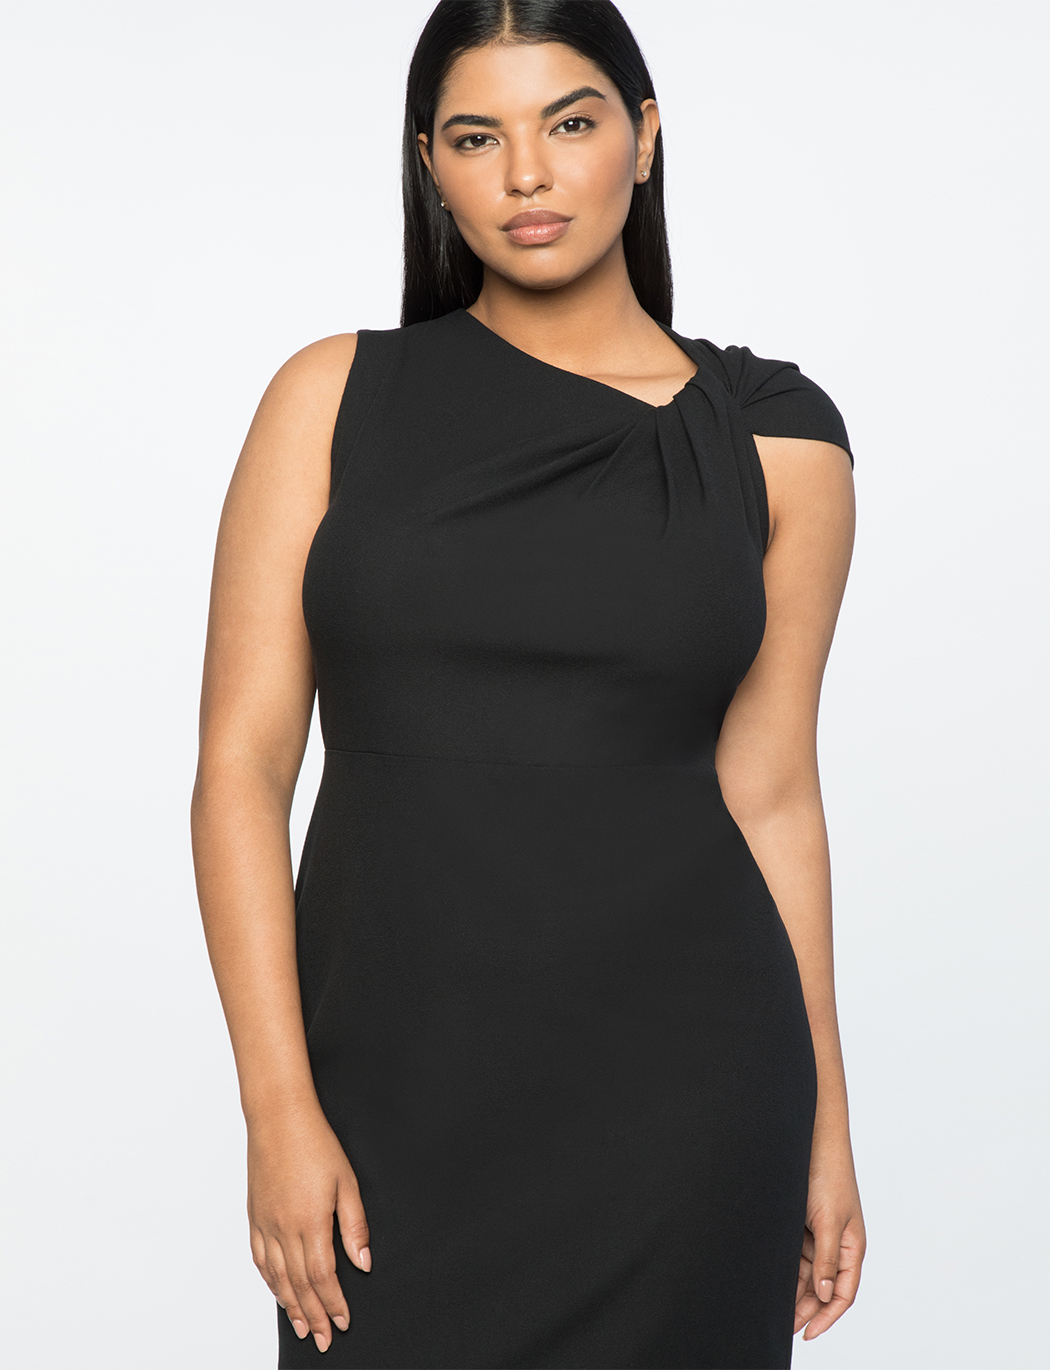 Jason Wu X ELOQUII Twist Shoulder Sheath Dress